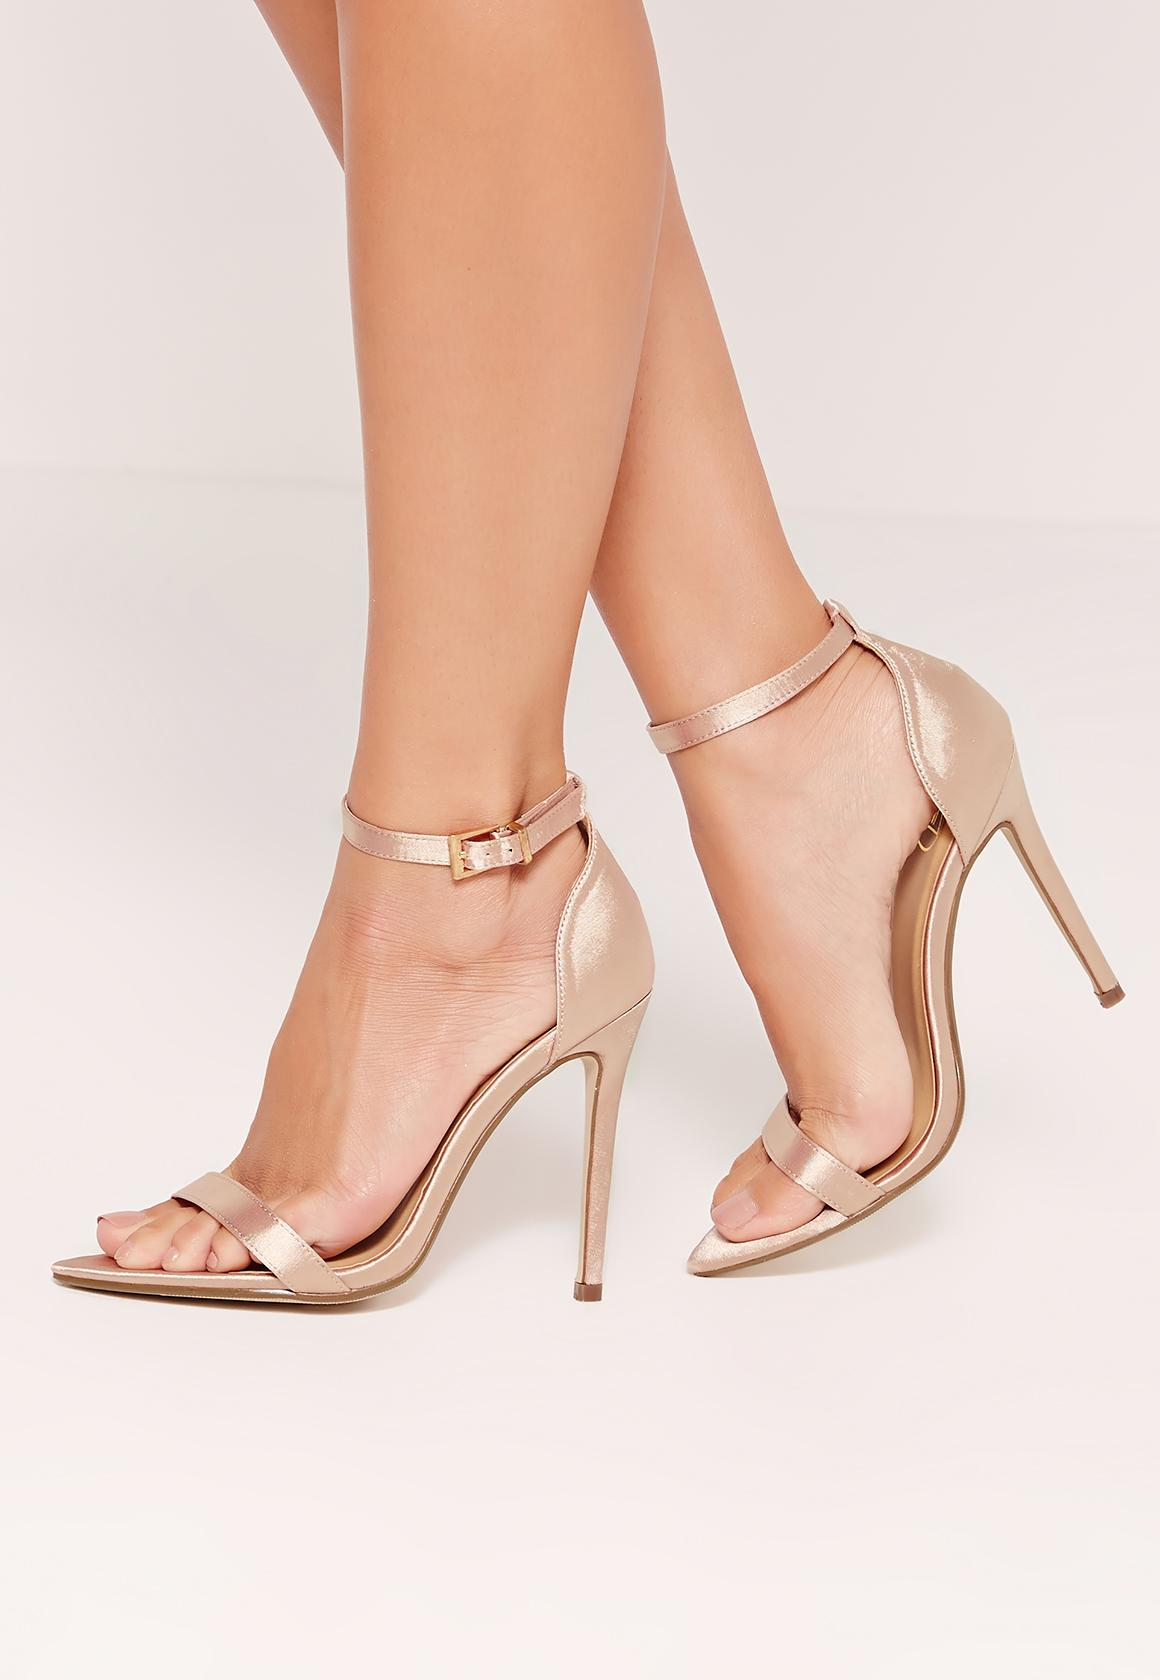 Satin Pointed Toe Barely There Heels Gold - Missguided